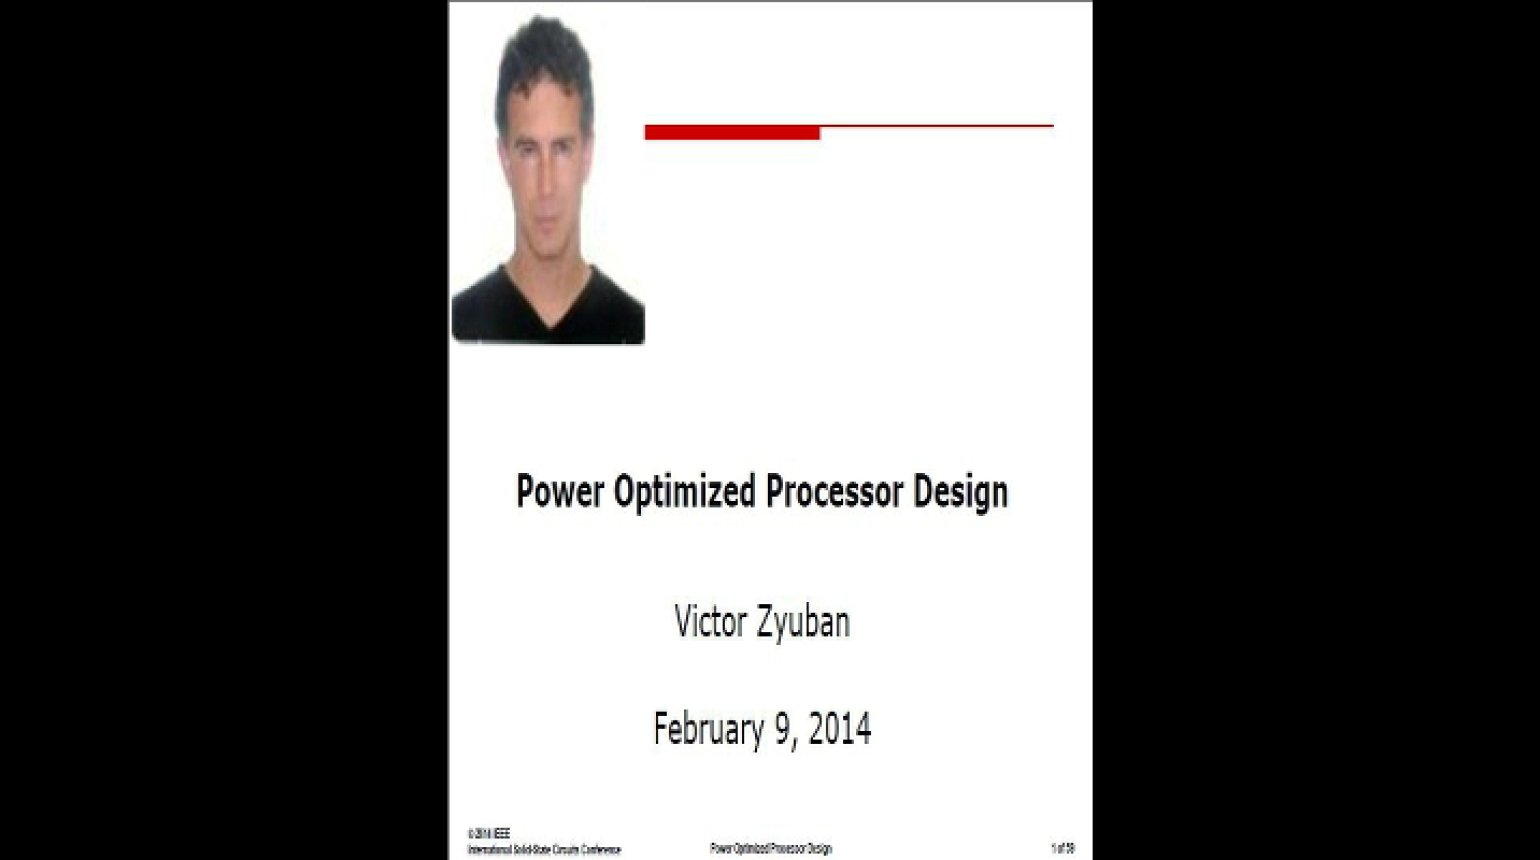 Power Optimized Processor Design Video